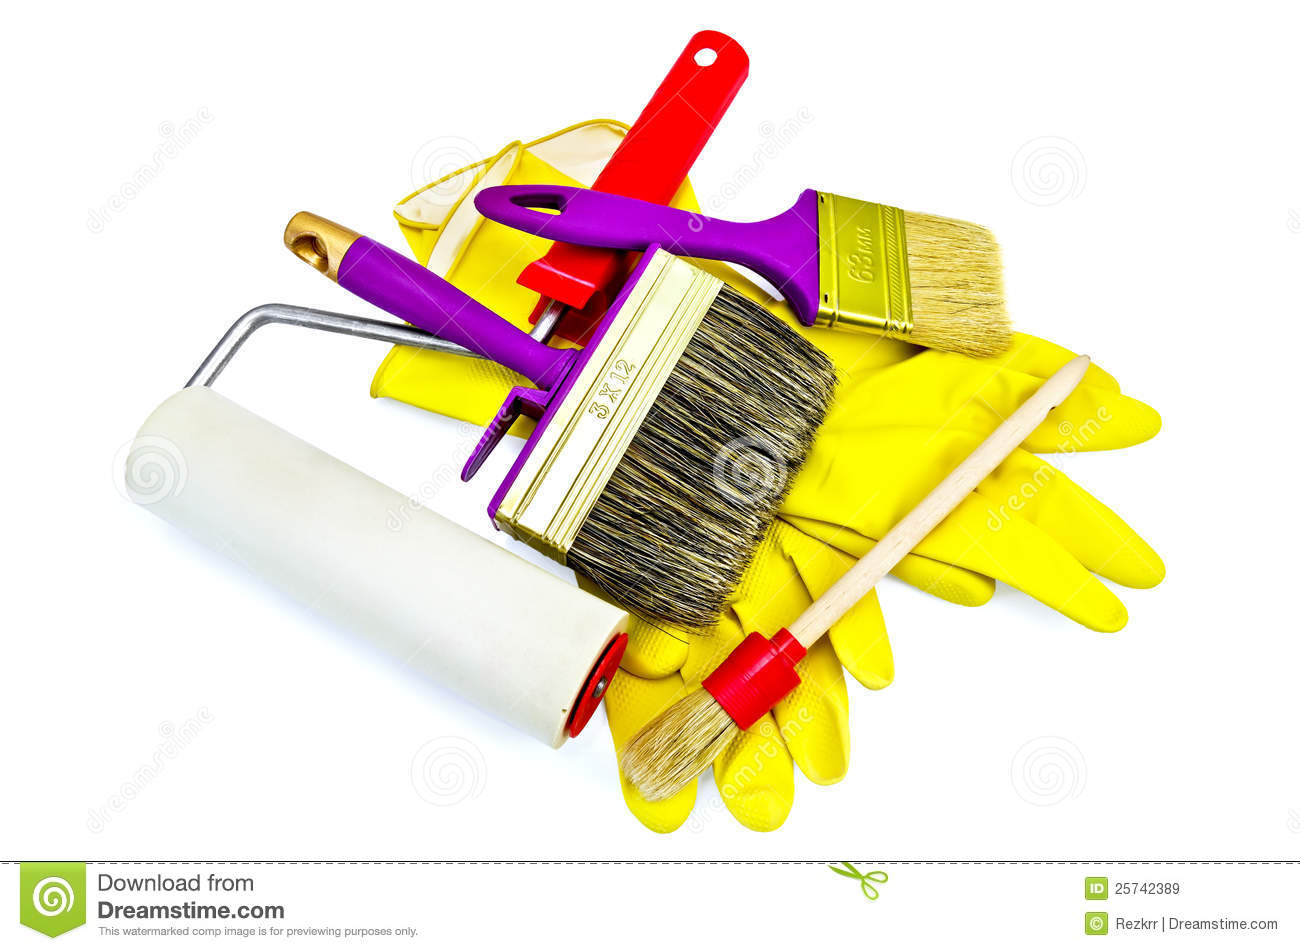 Brushes of various sizes with gloves and roller